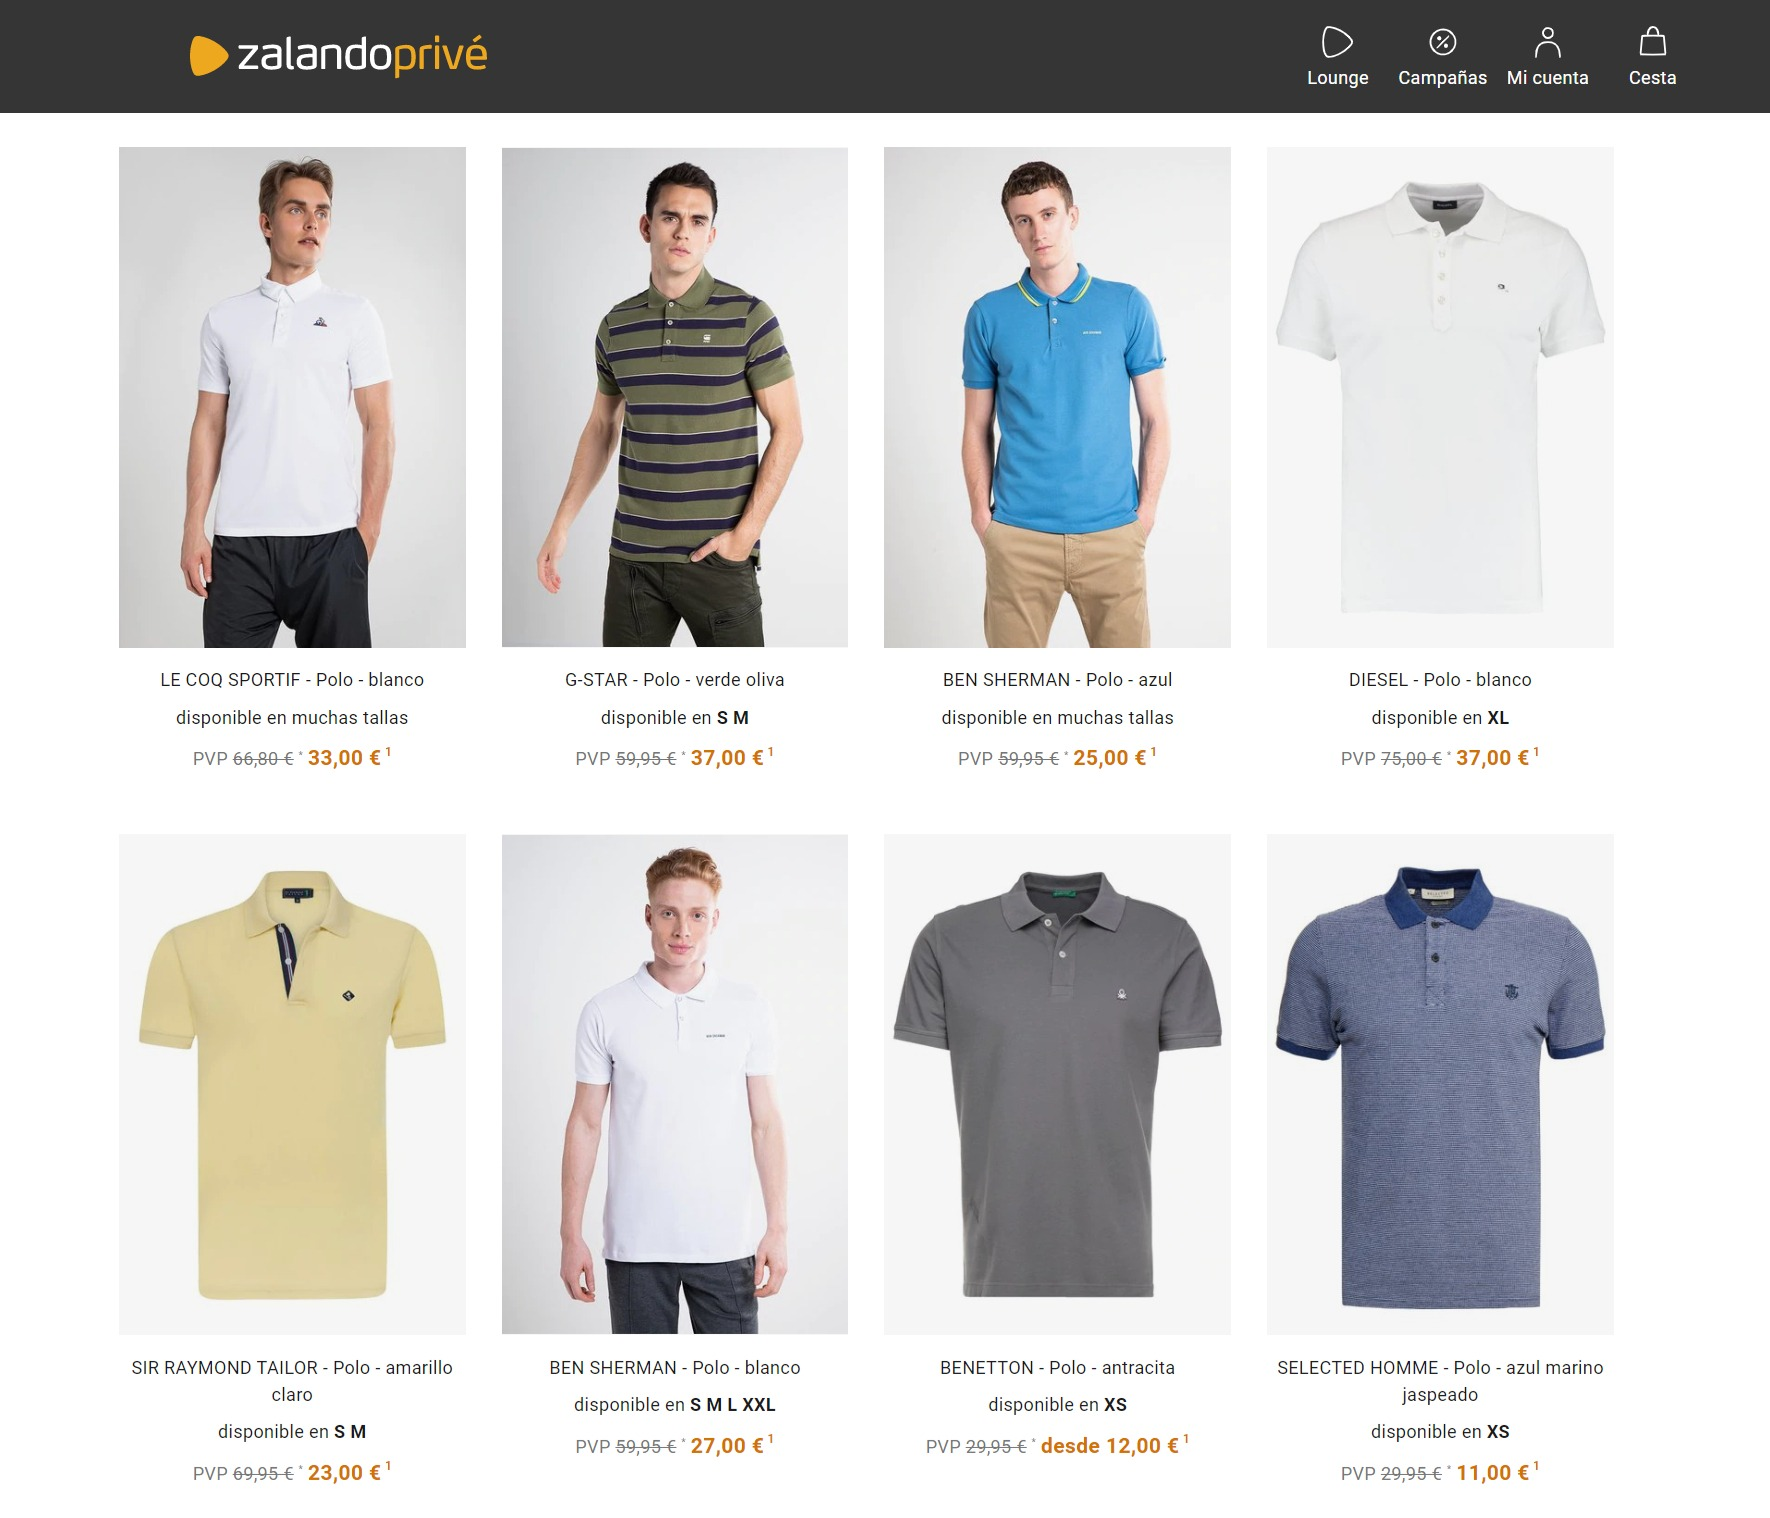 camisetas polo zalando prive